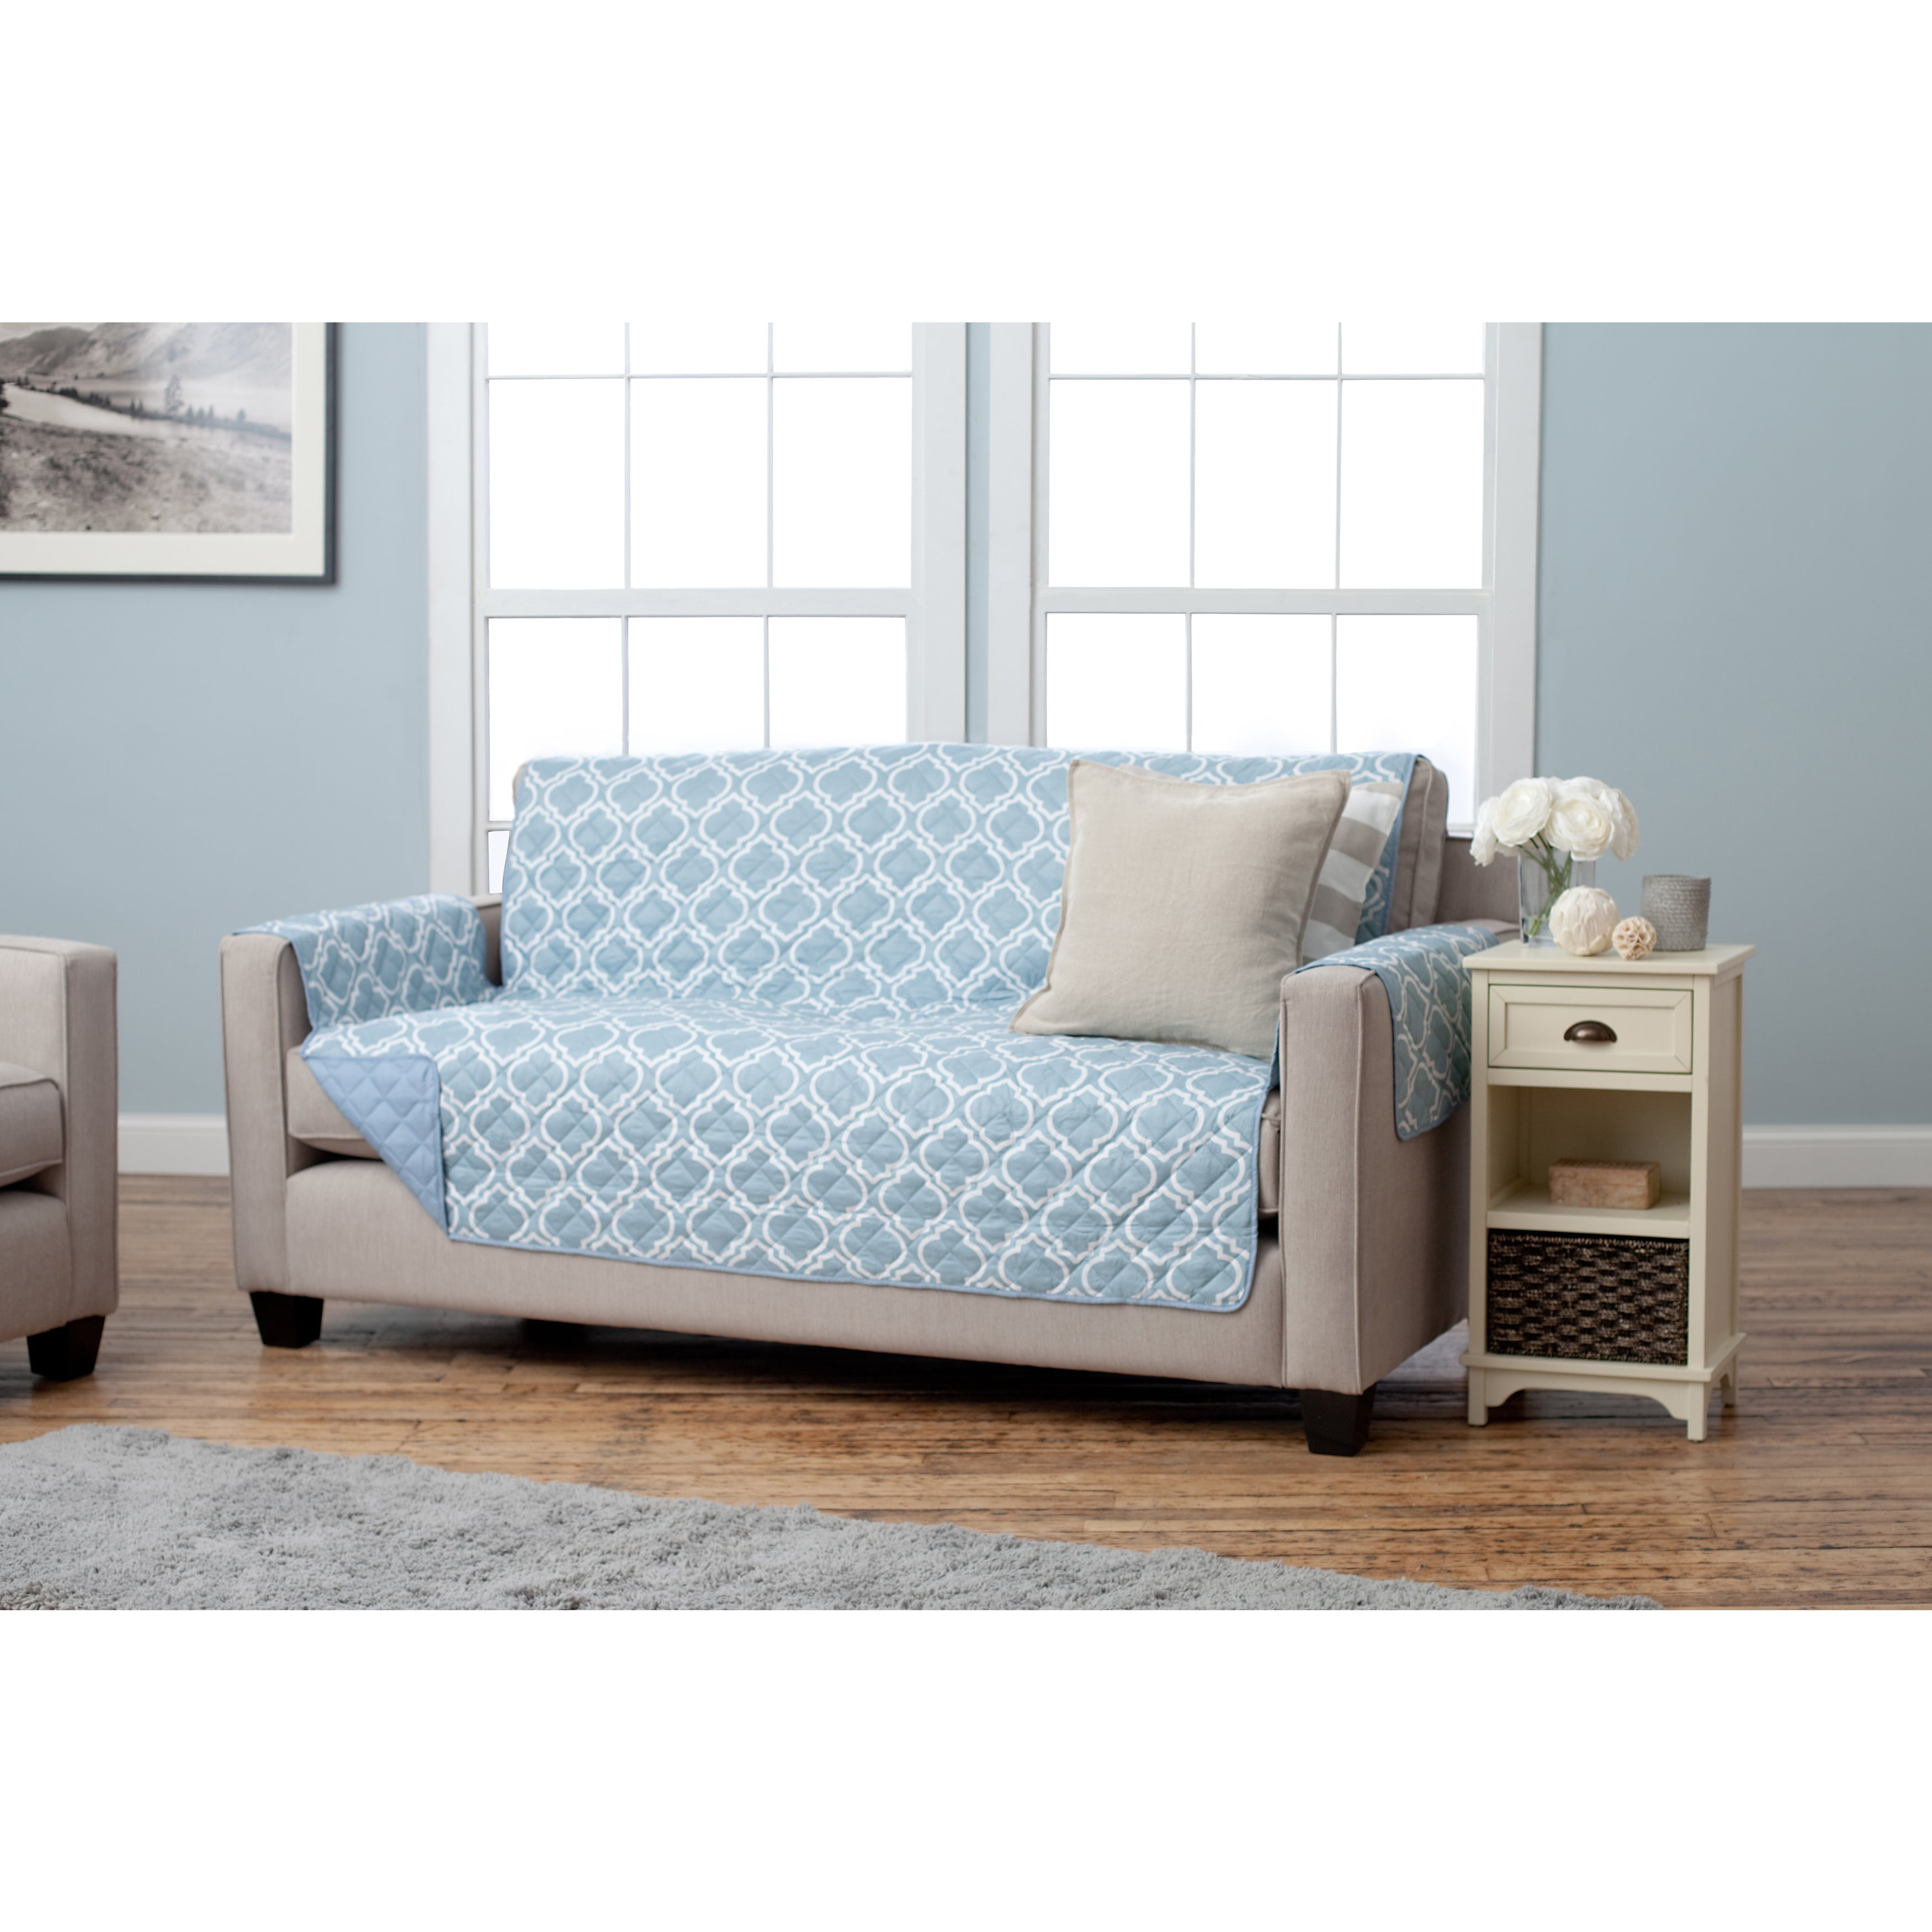 Superieur Shop Home Fashion Designs Adalyn Collection Printed Reversible Sofa  Protector   On Sale   Free Shipping On Orders Over $45   Overstock.com    10695519